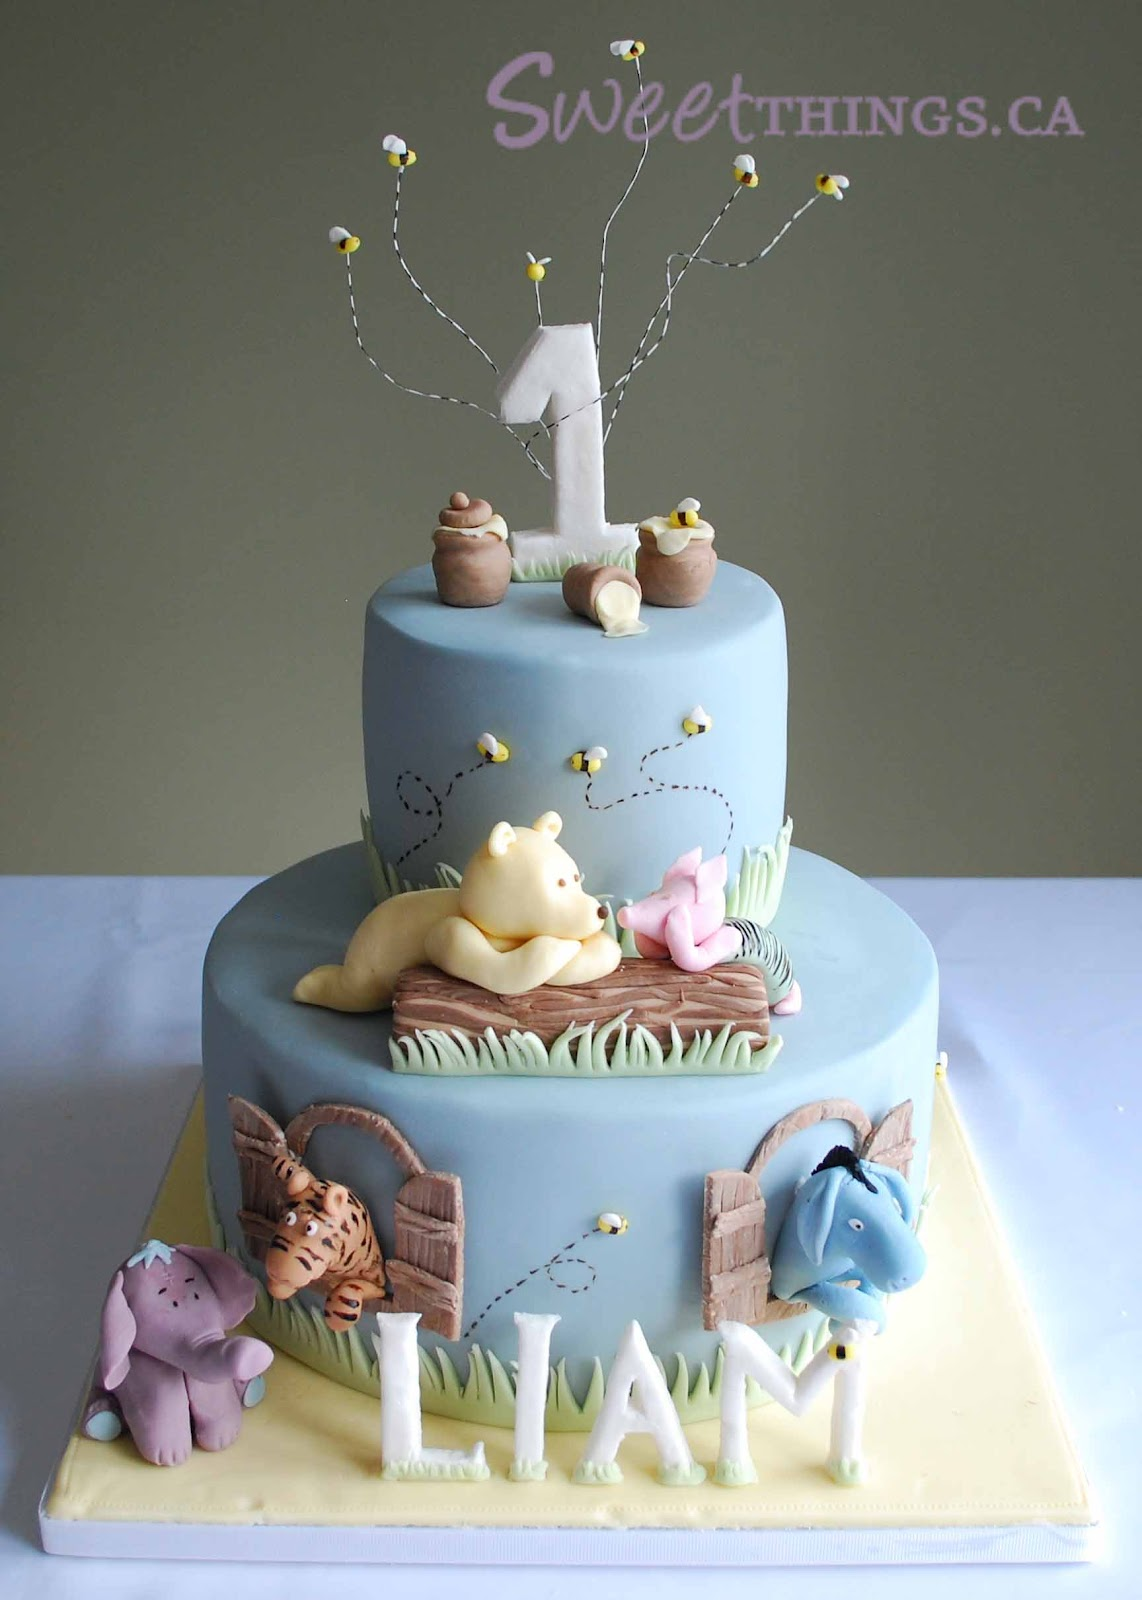 sweetthings 1st birthday classic winnie the pooh cake. Black Bedroom Furniture Sets. Home Design Ideas